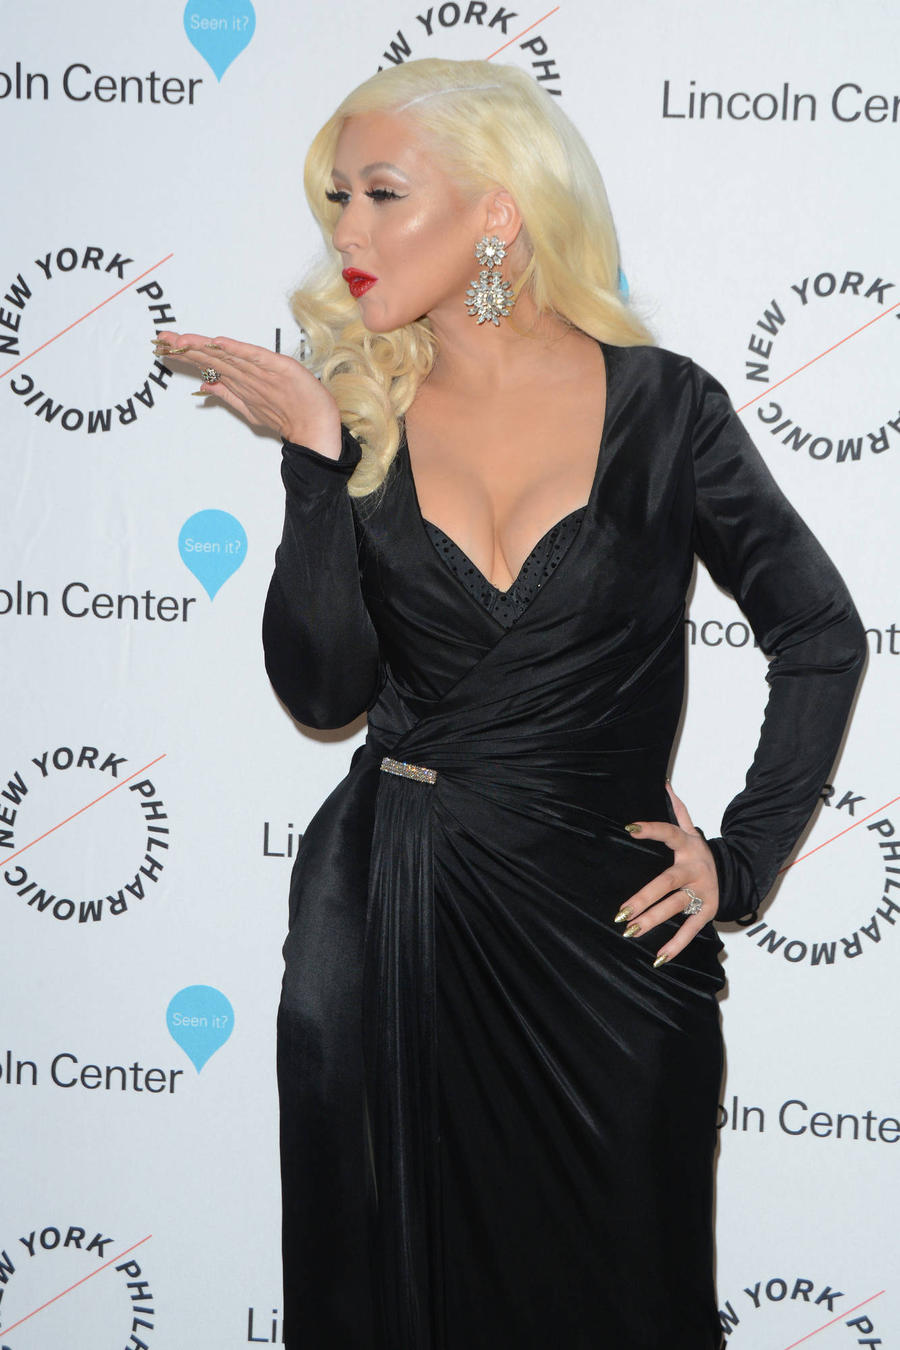 Christina Aguilera Kissed A Girl On Tv - And She Liked It